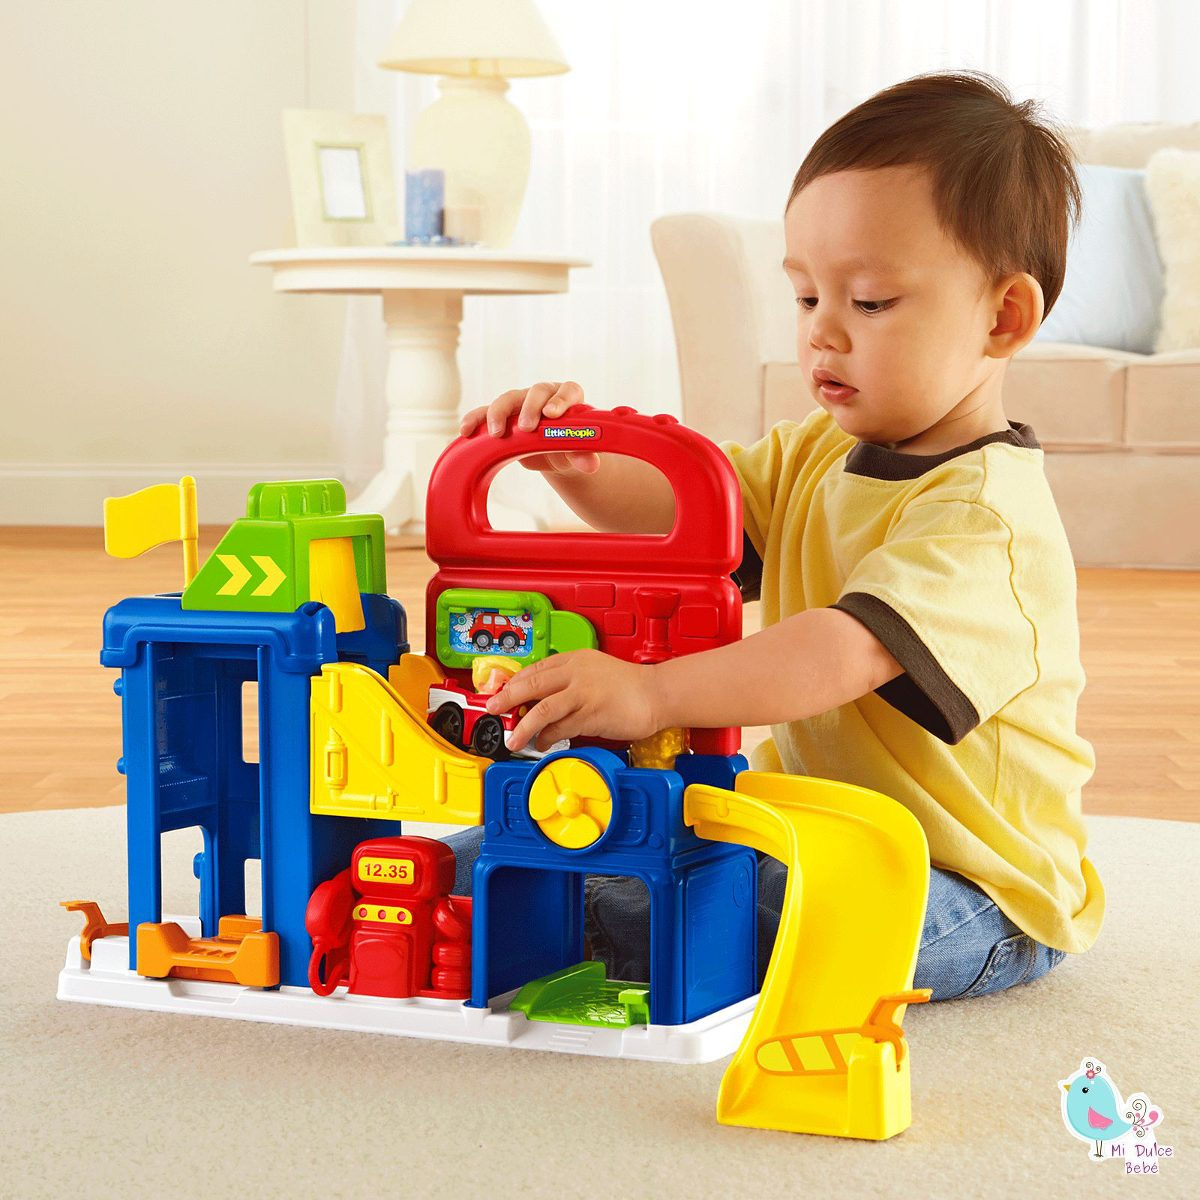 Pricing People: Garage Con Accesorios Little People Bft92 De Fisher Price